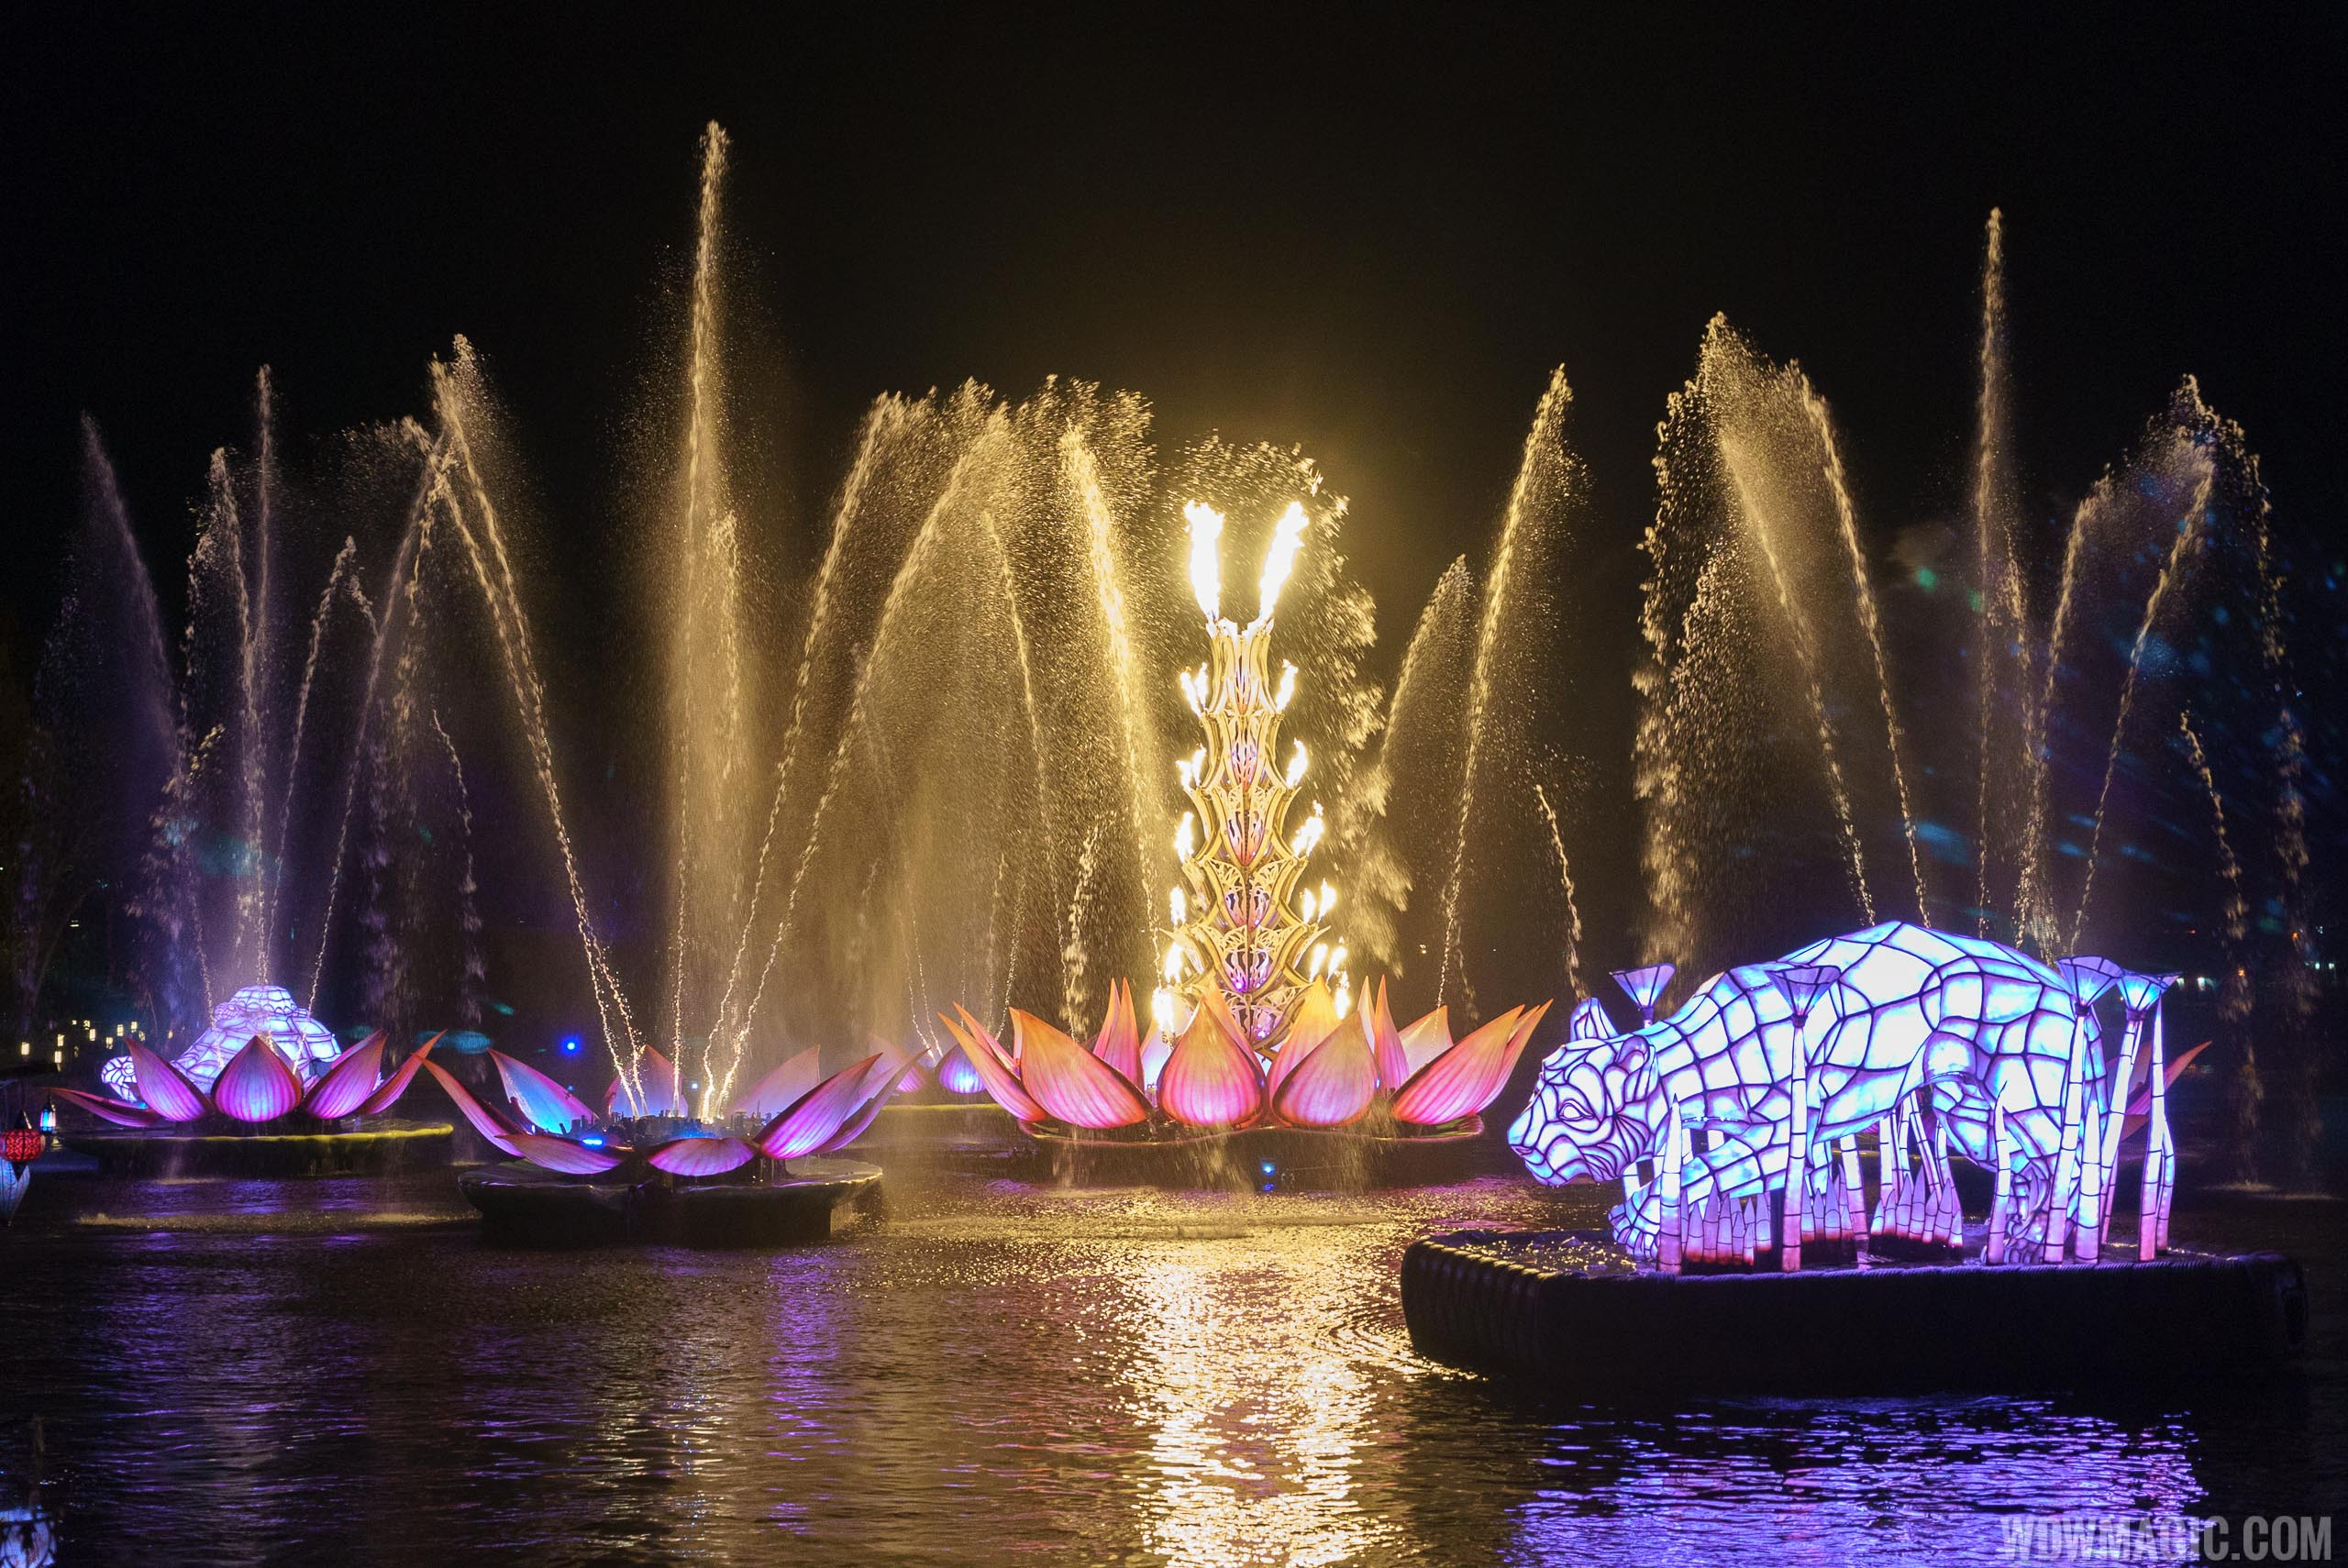 Rivers Of Light News - Rivers of